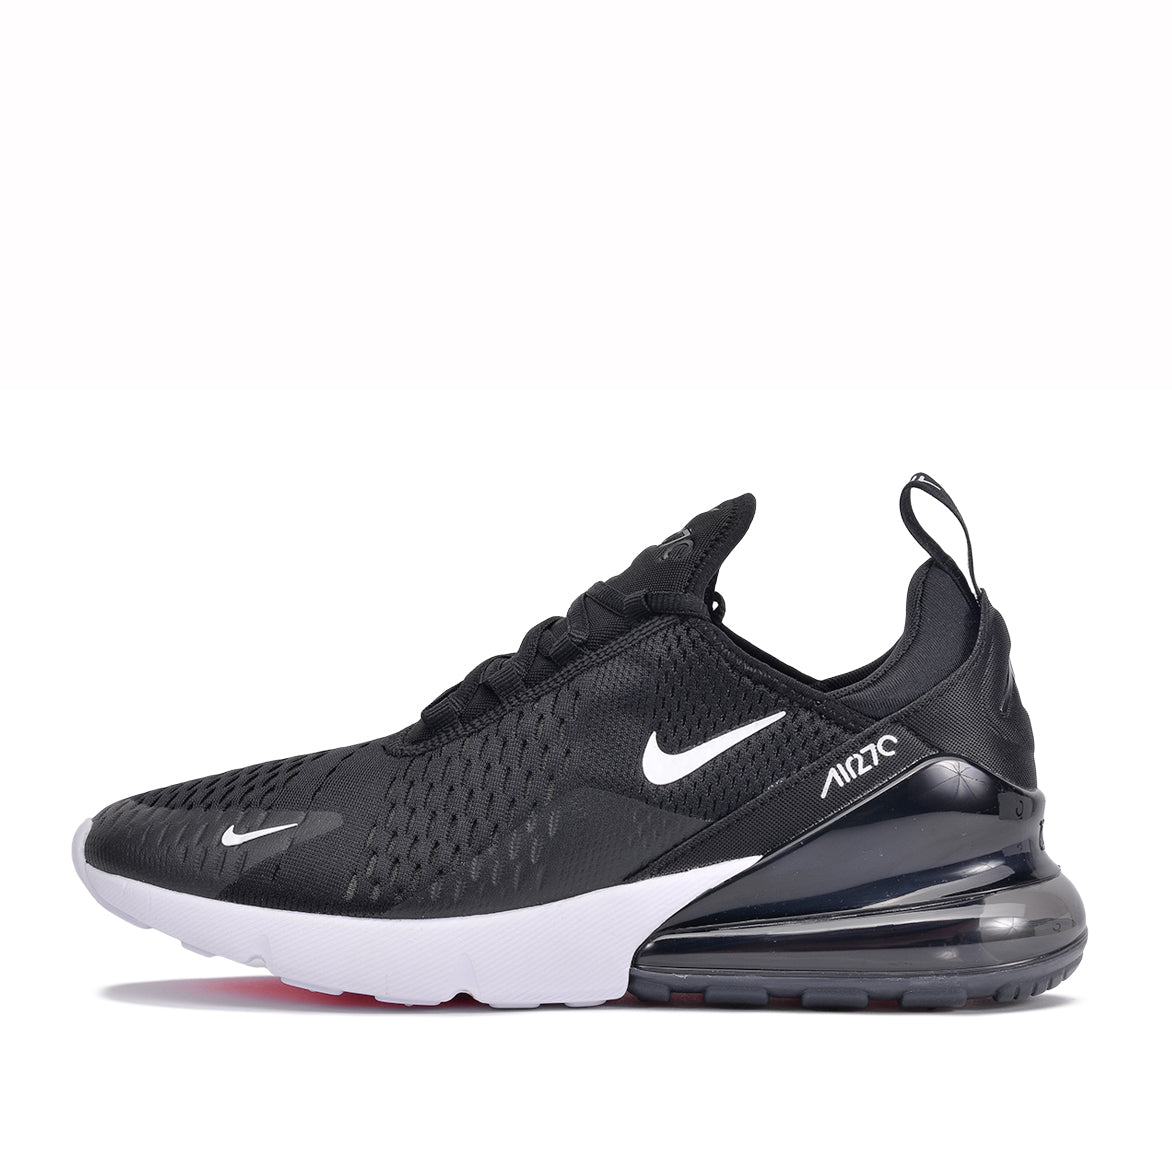 AIR MAX 270 - BLACK / WHITE